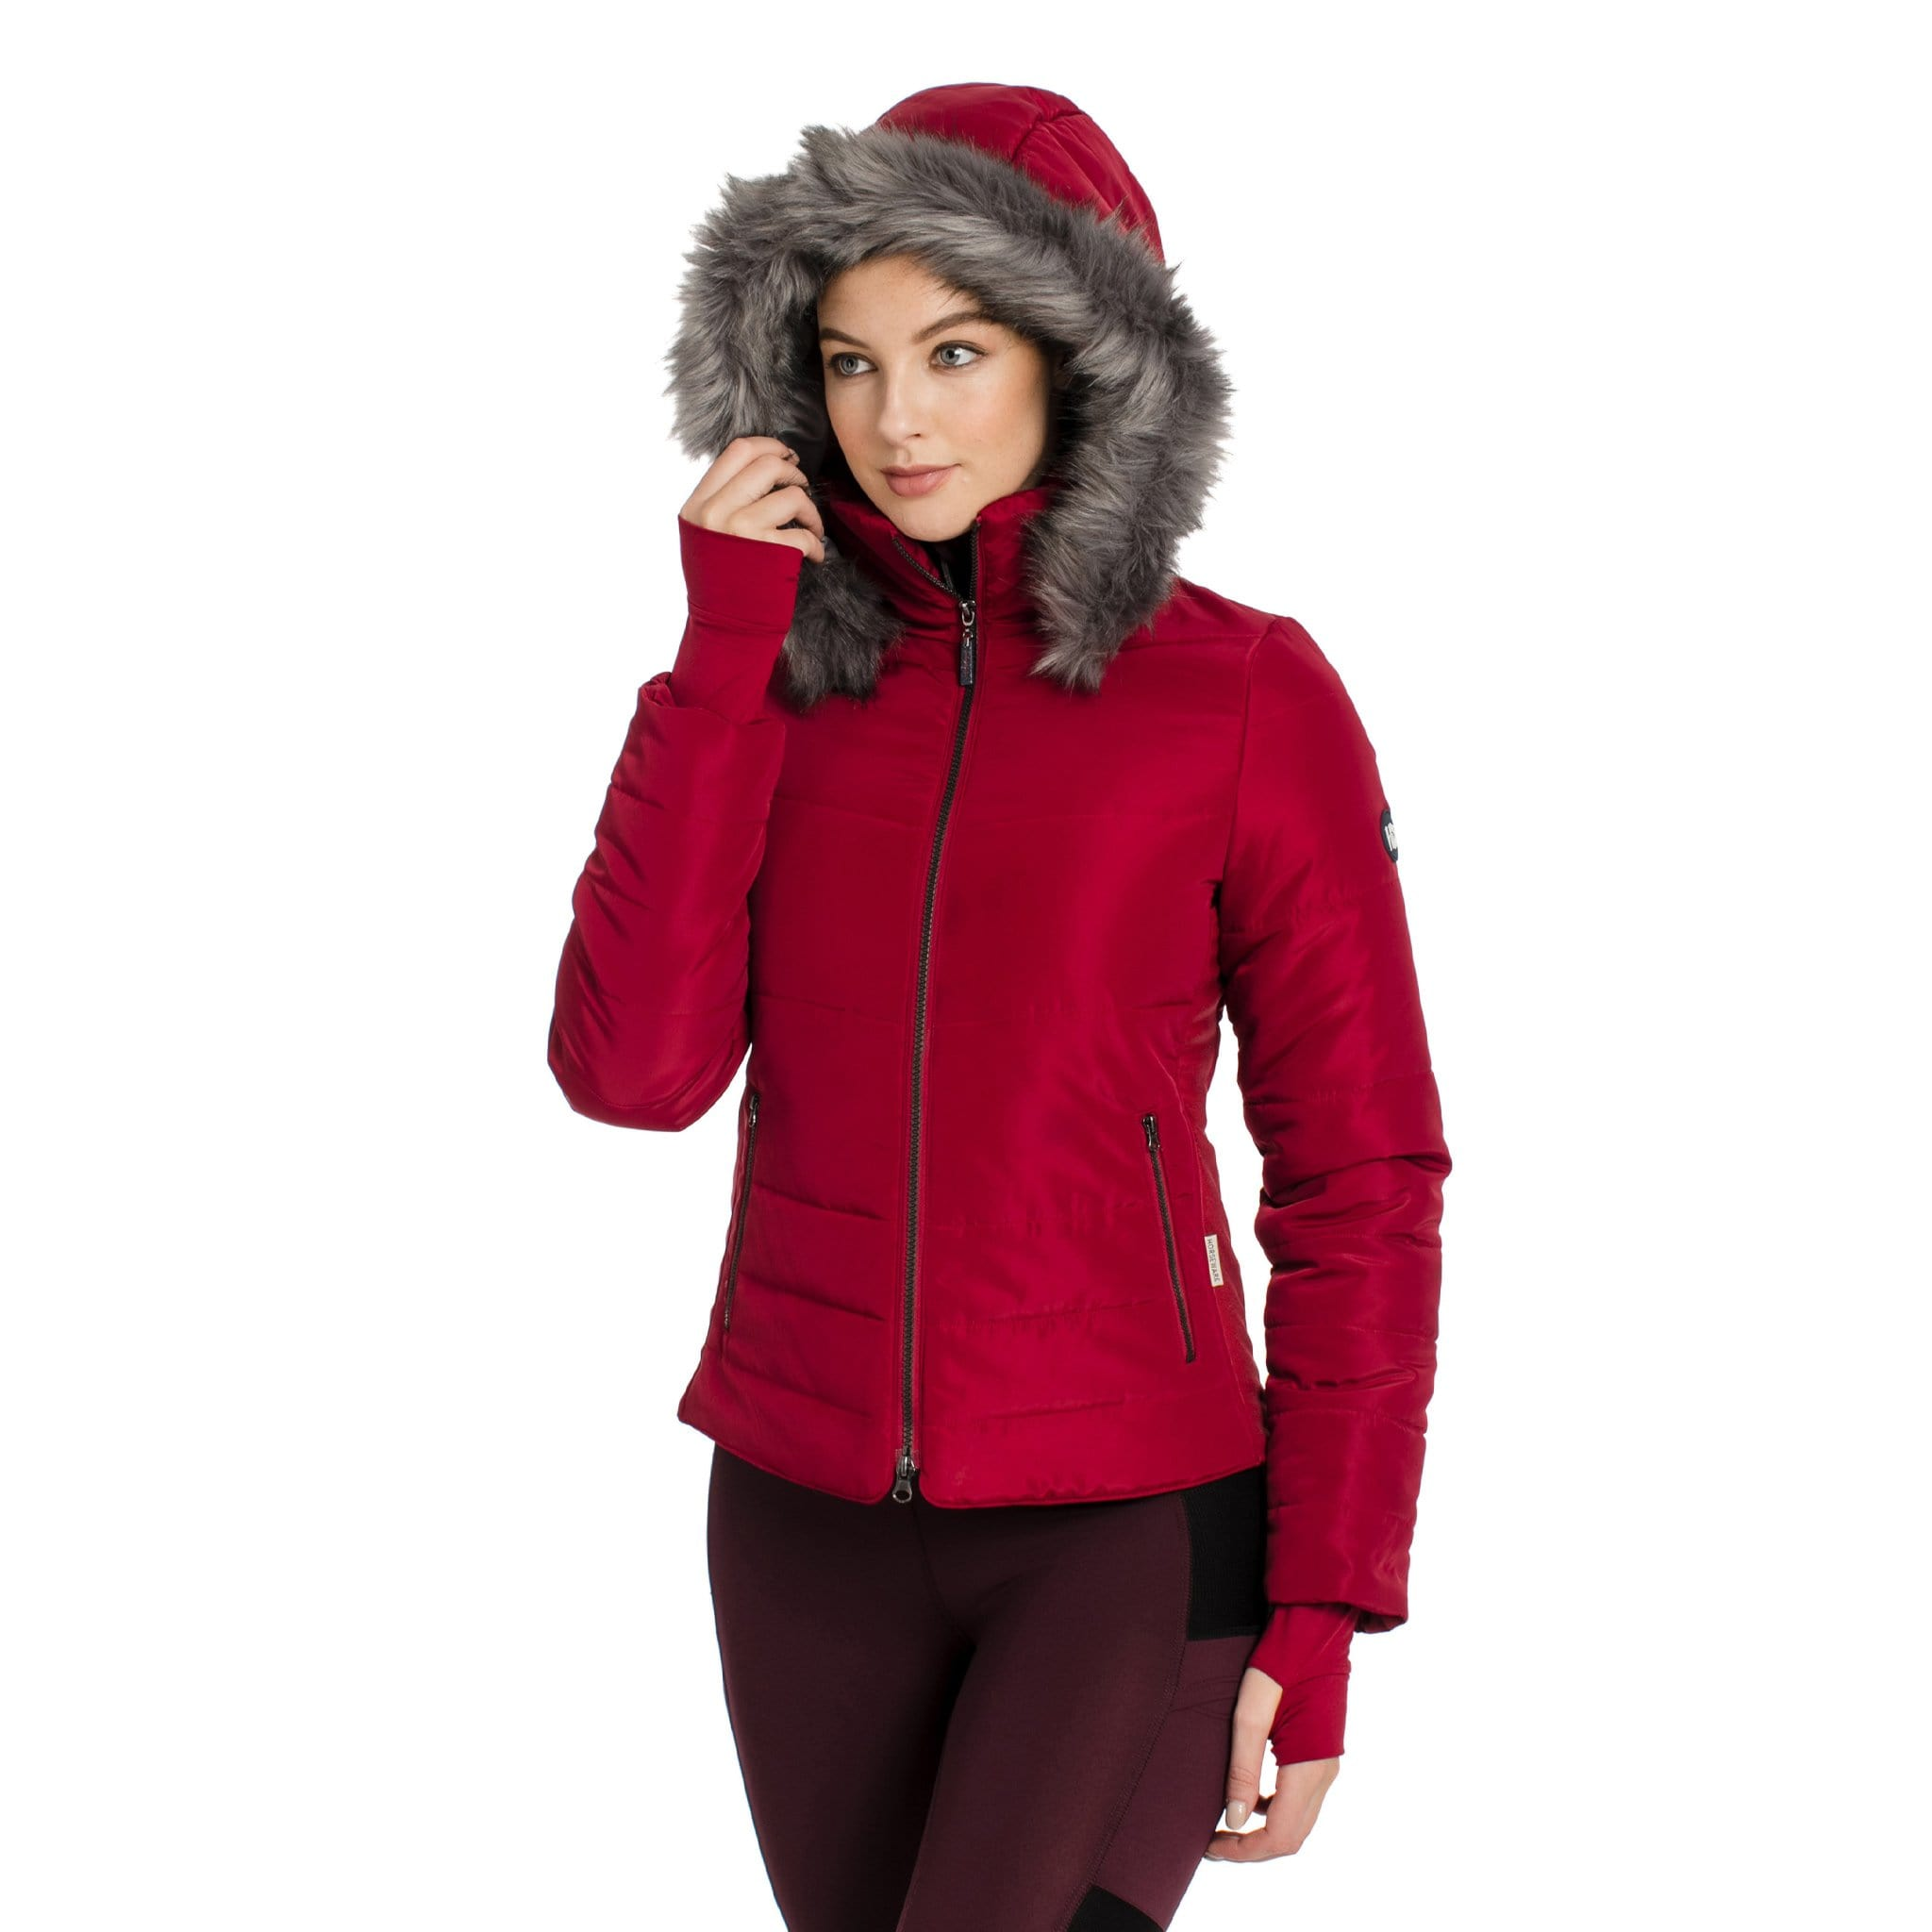 Horseware Alexa Padded Jacket CENETH Rio Red On Model Front View With Hood Up